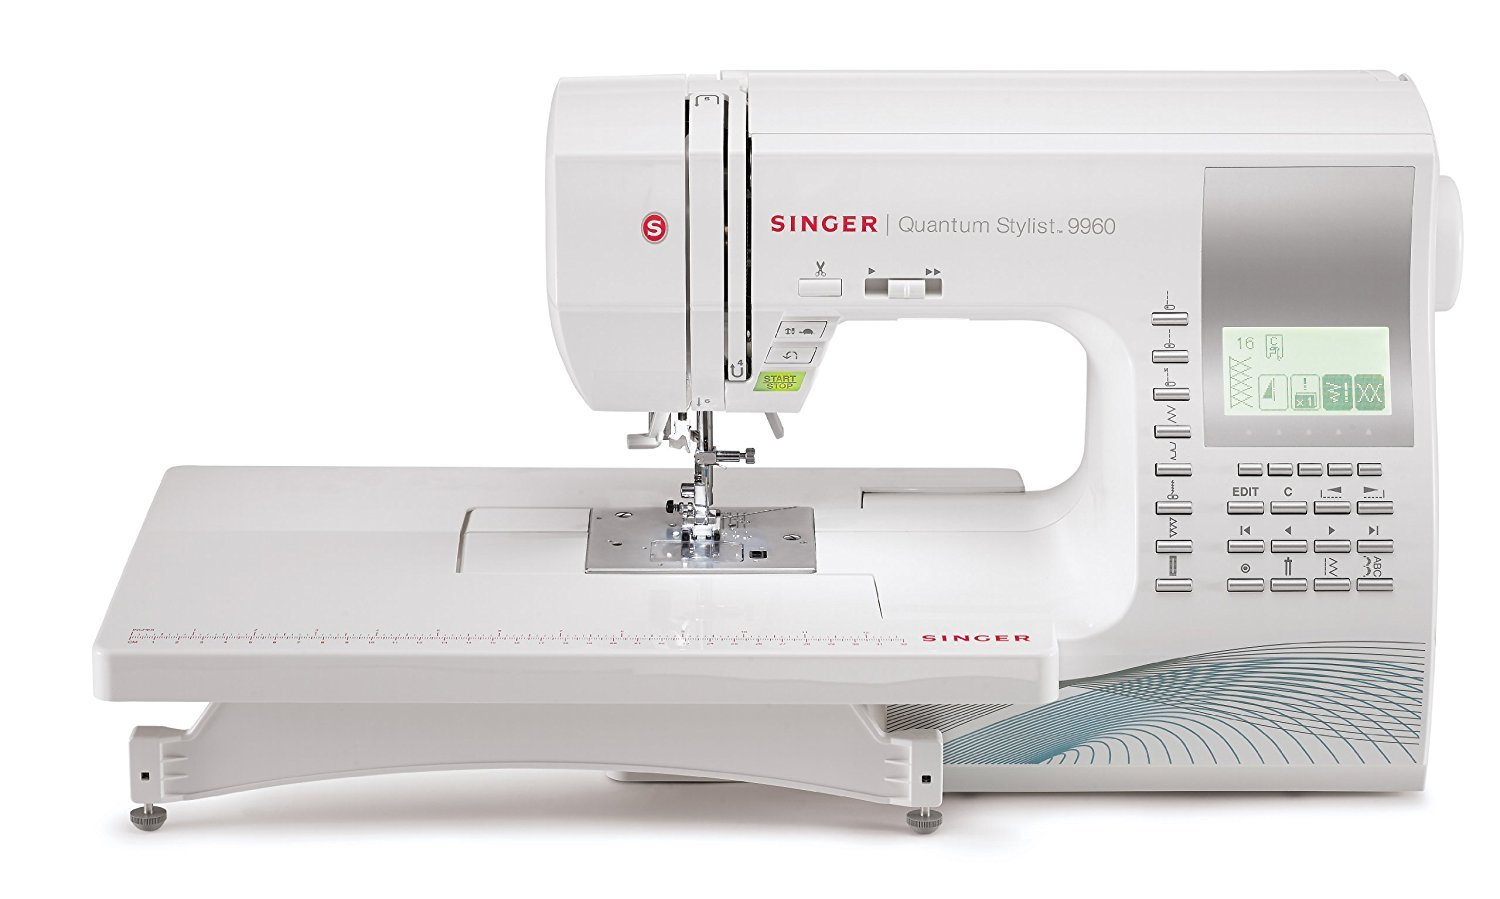 Top 10 Best Heavy Duty Sewing Machine Reviews in 2020 1